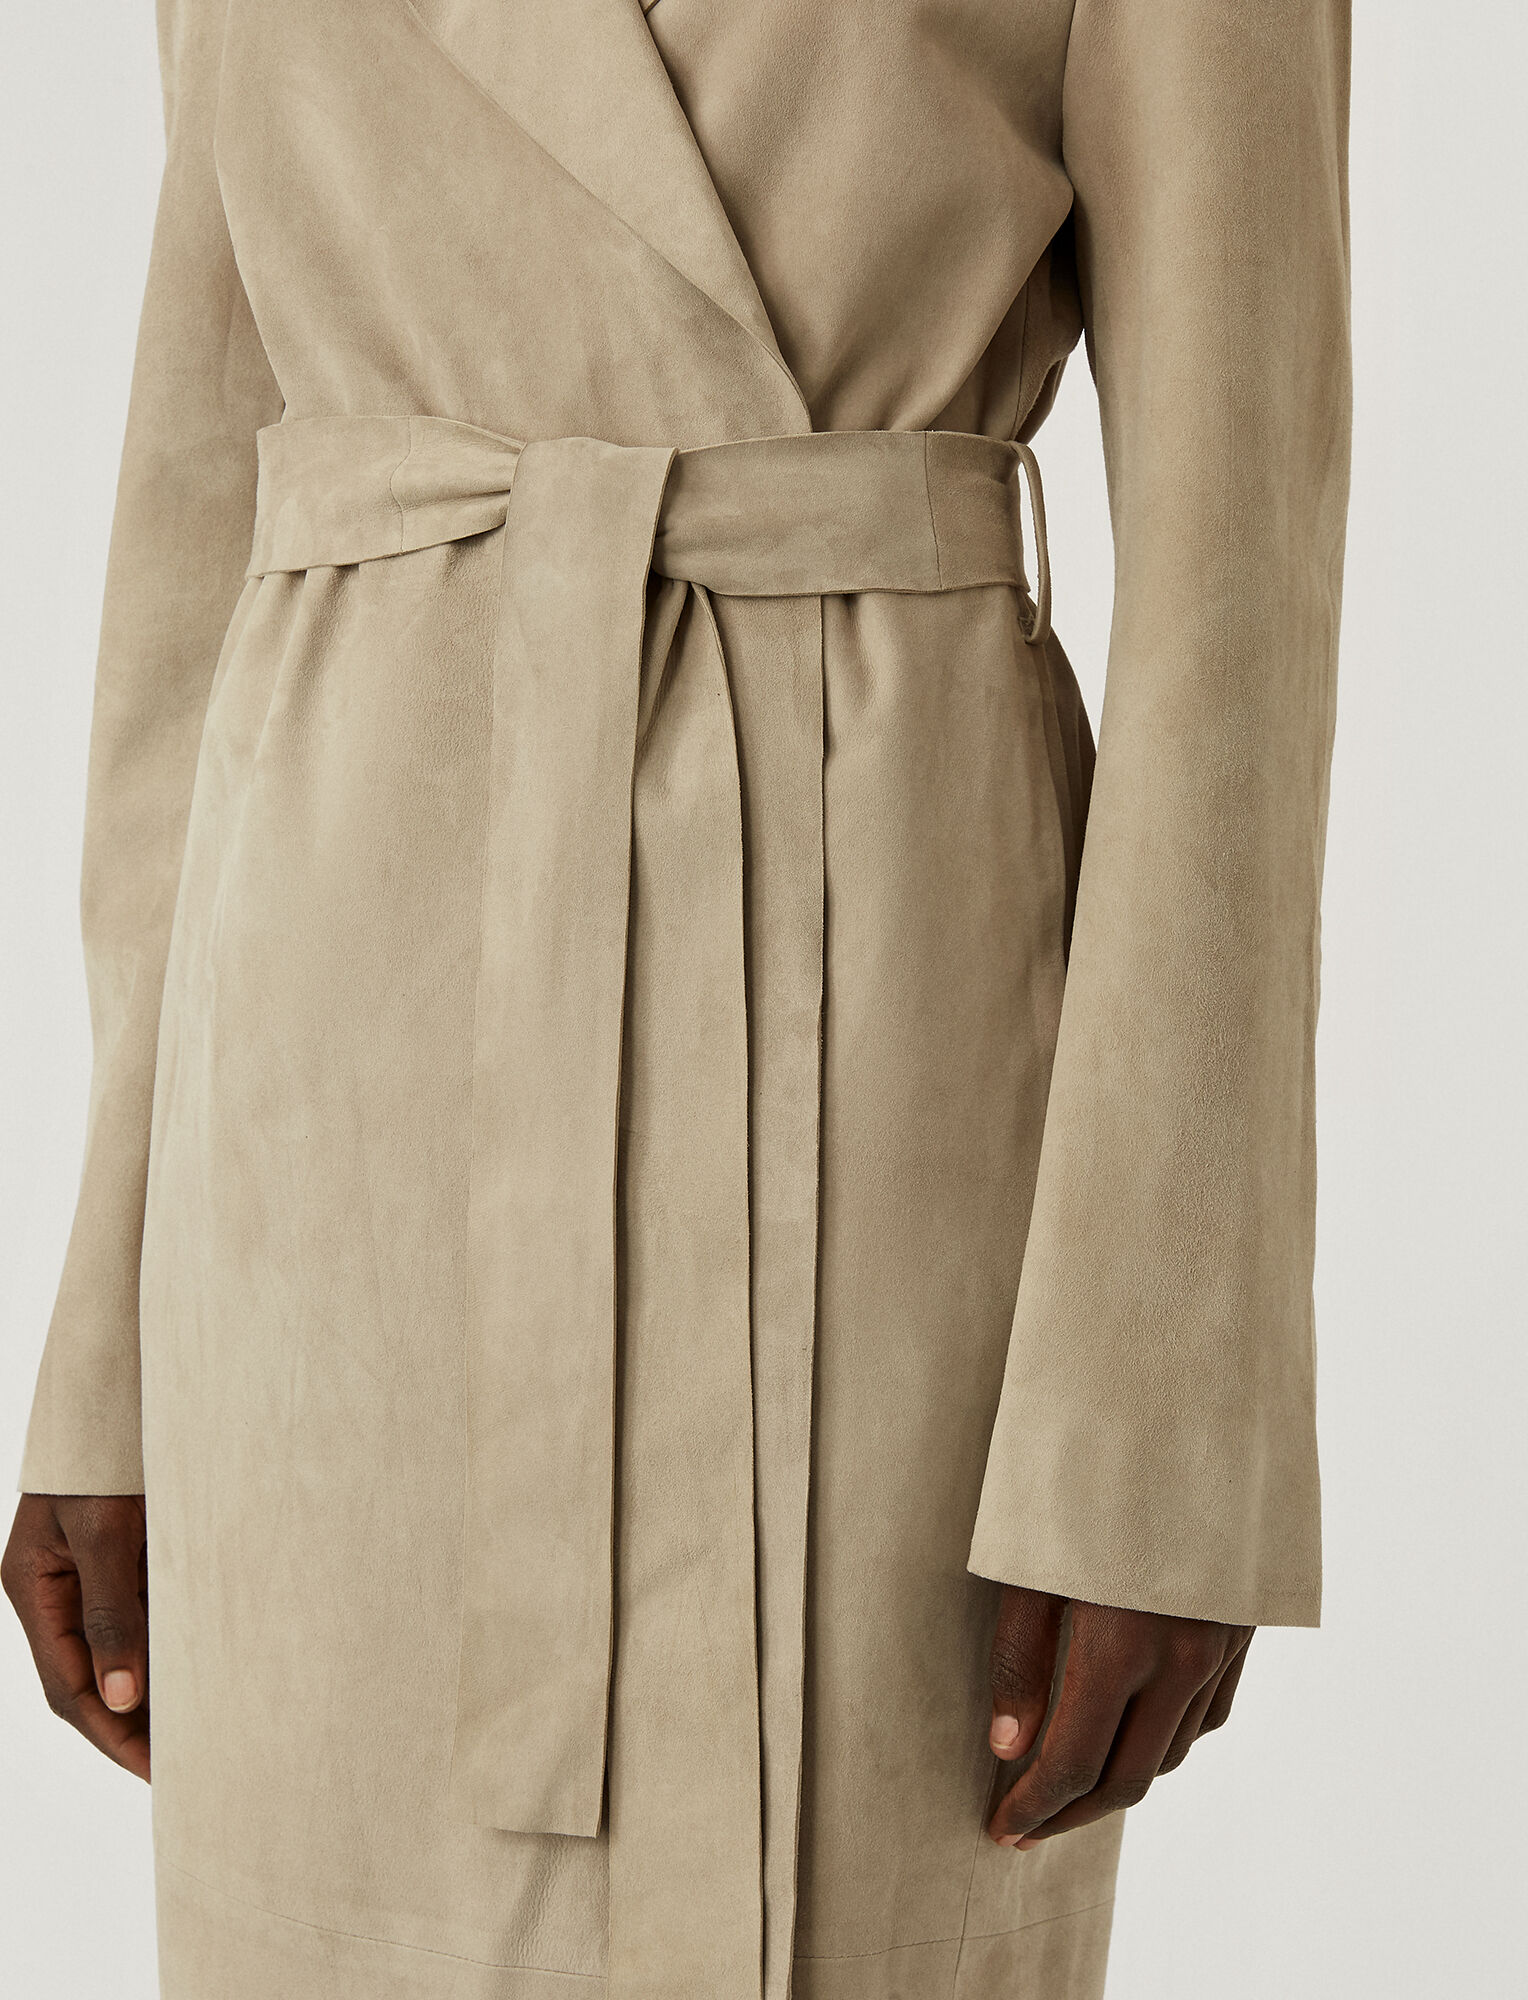 Joseph, Suede June Coat, in CLOUD